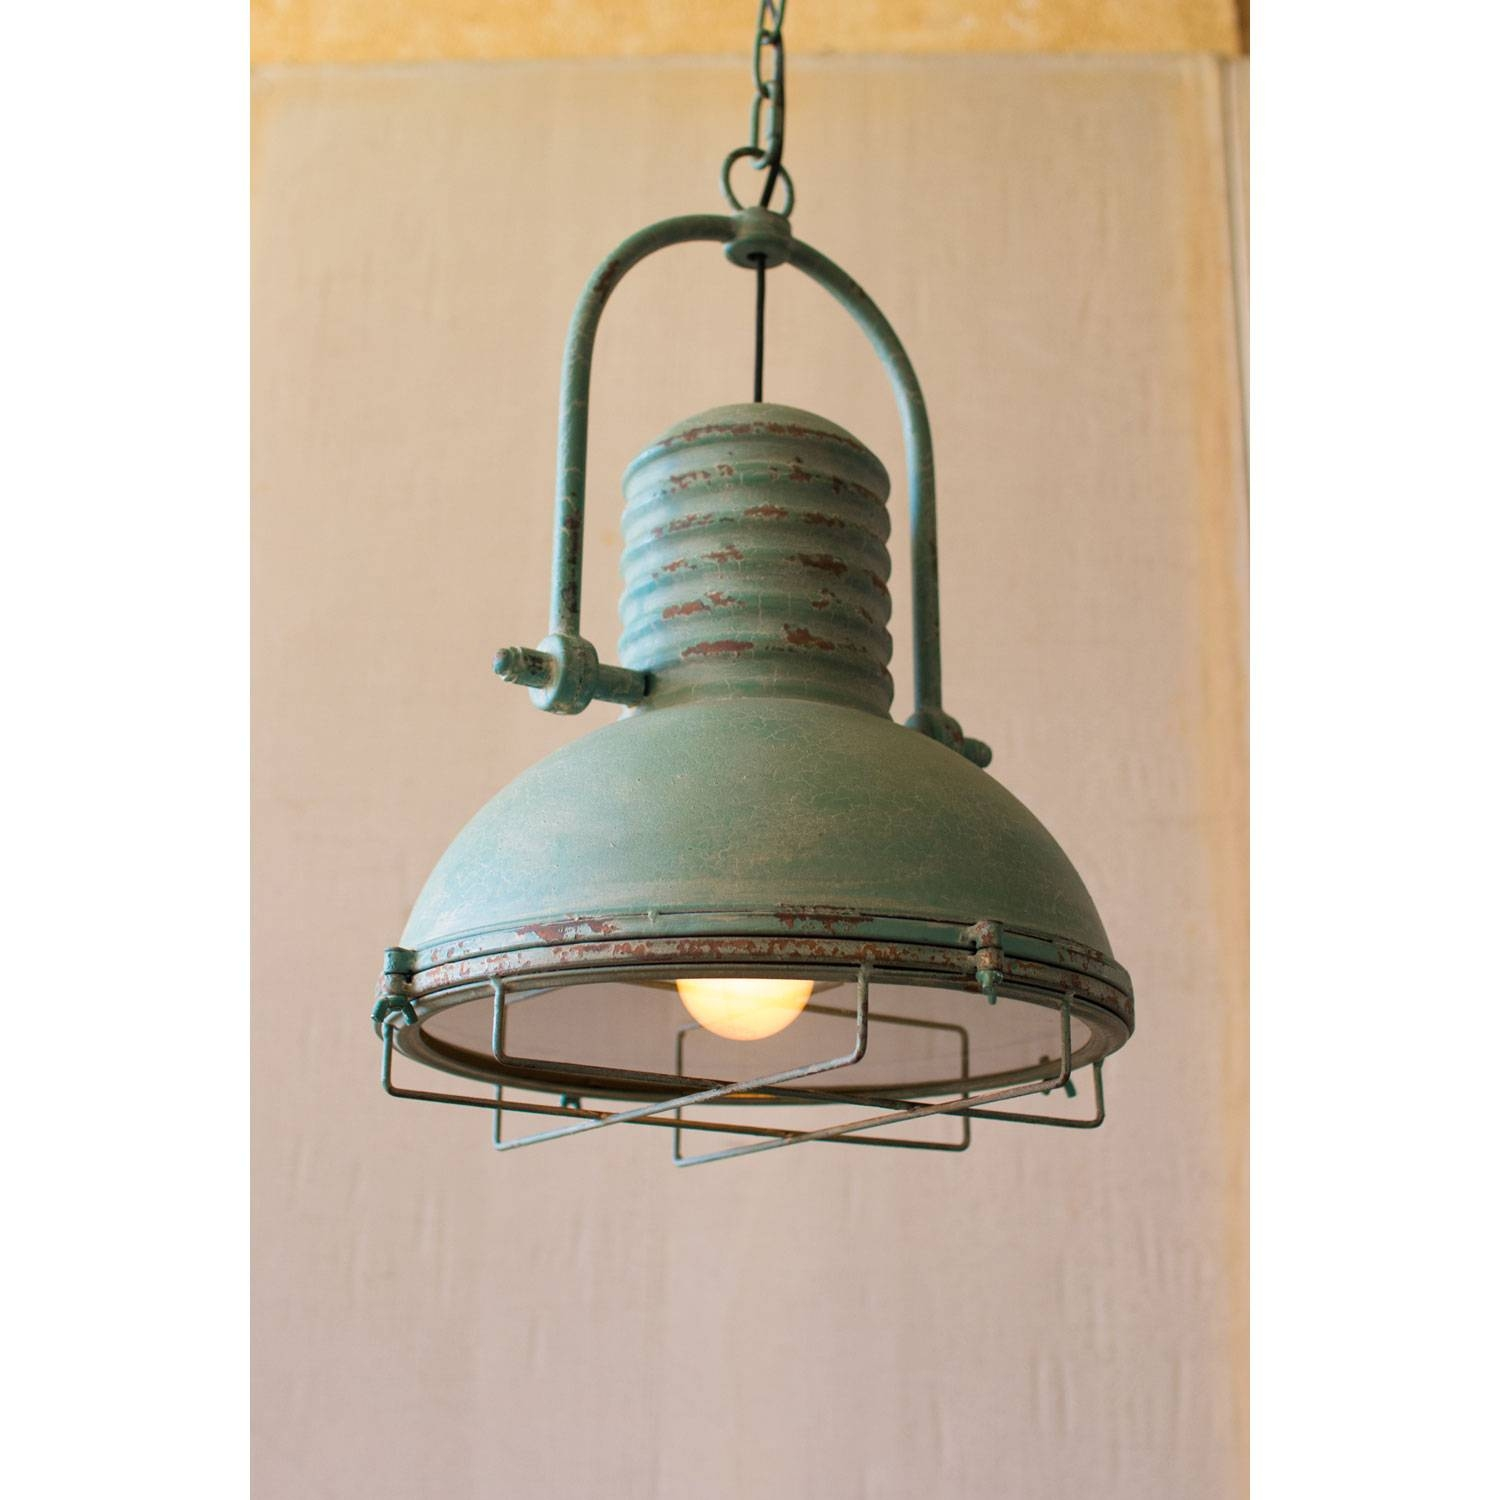 Turquoise Blue Pendant Lighting Including Kalalou, Robert Abbey in Turquoise Blue Glass Pendant Lights (Image 14 of 15)